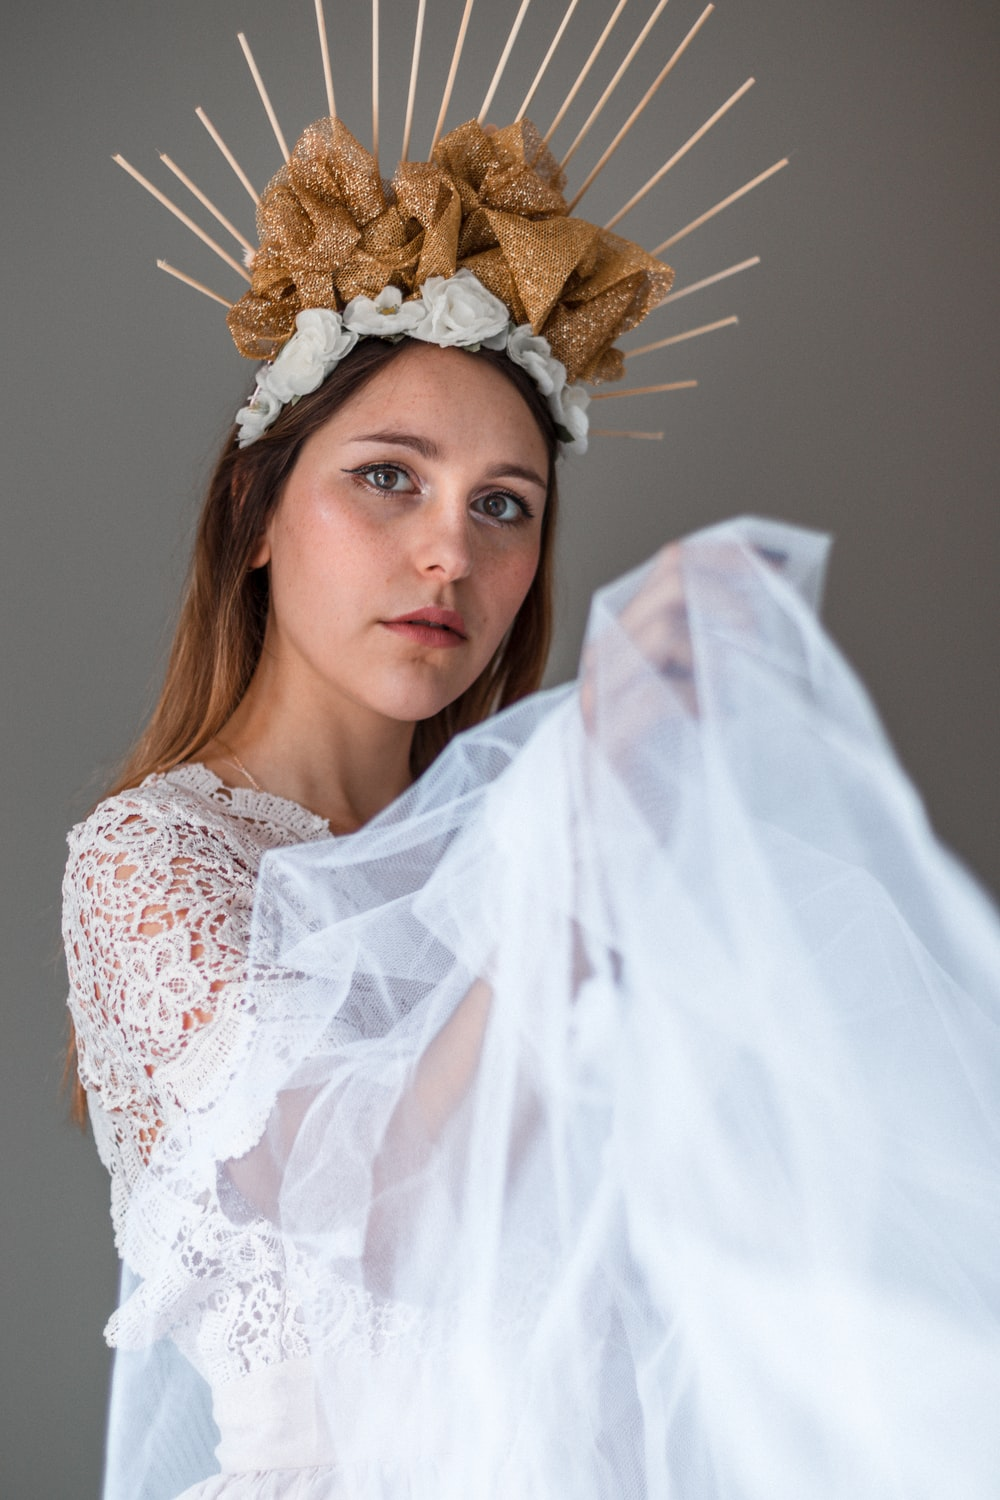 woman in white lace floral dress wearing brown floral head band